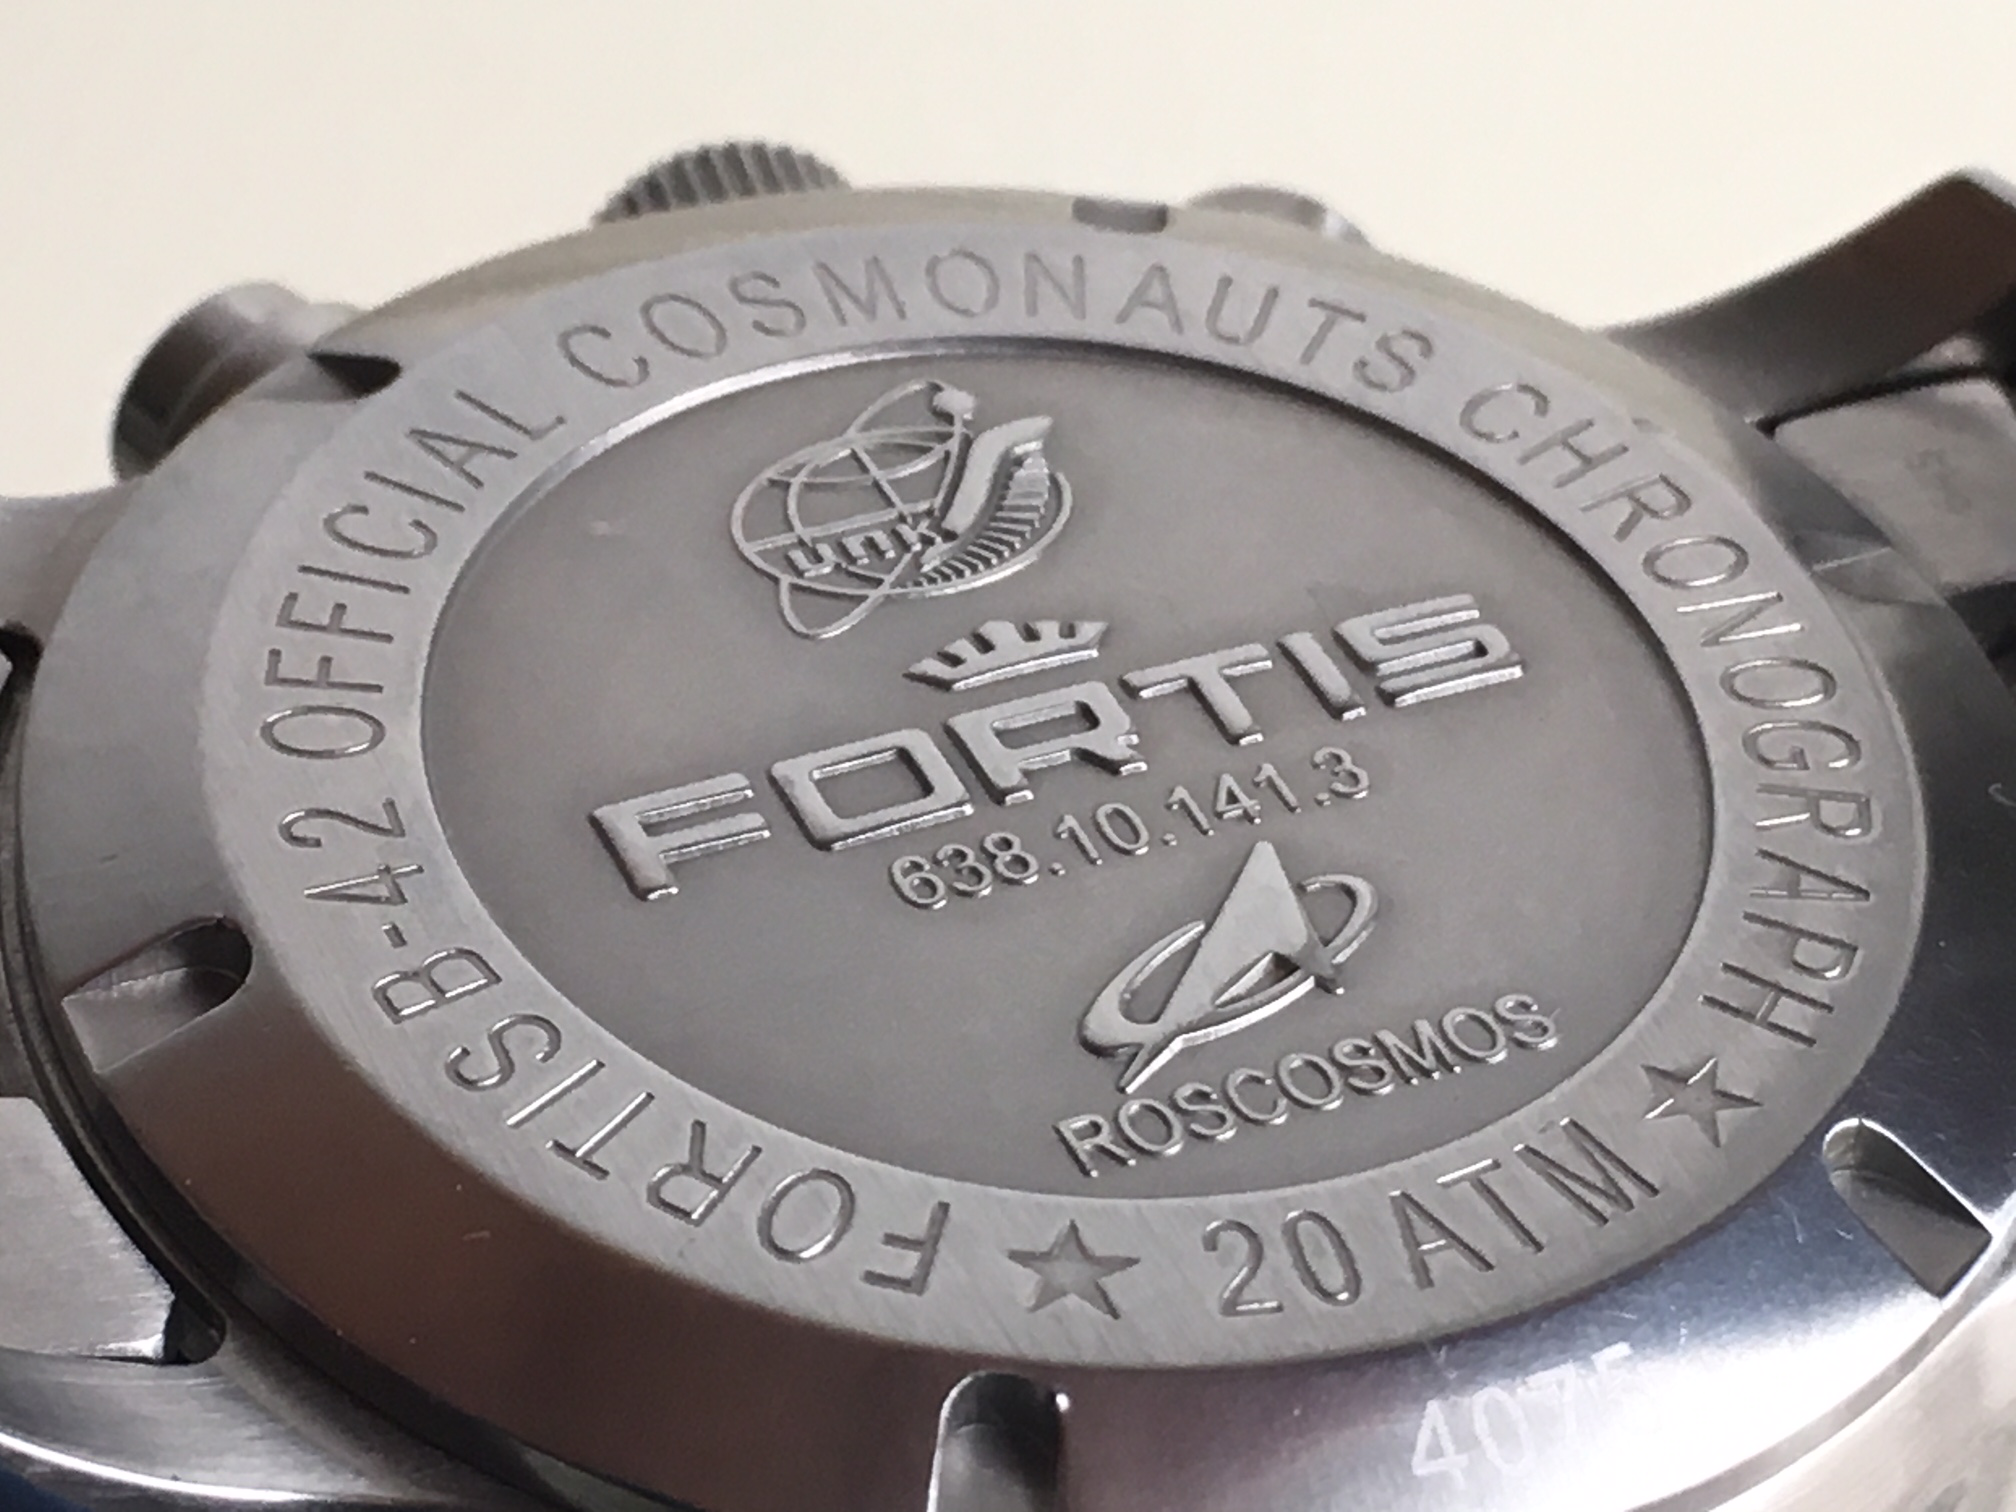 Fortis B-42 Official Cosmonauts Chronograph - Υπόλοιπες εταιρείες